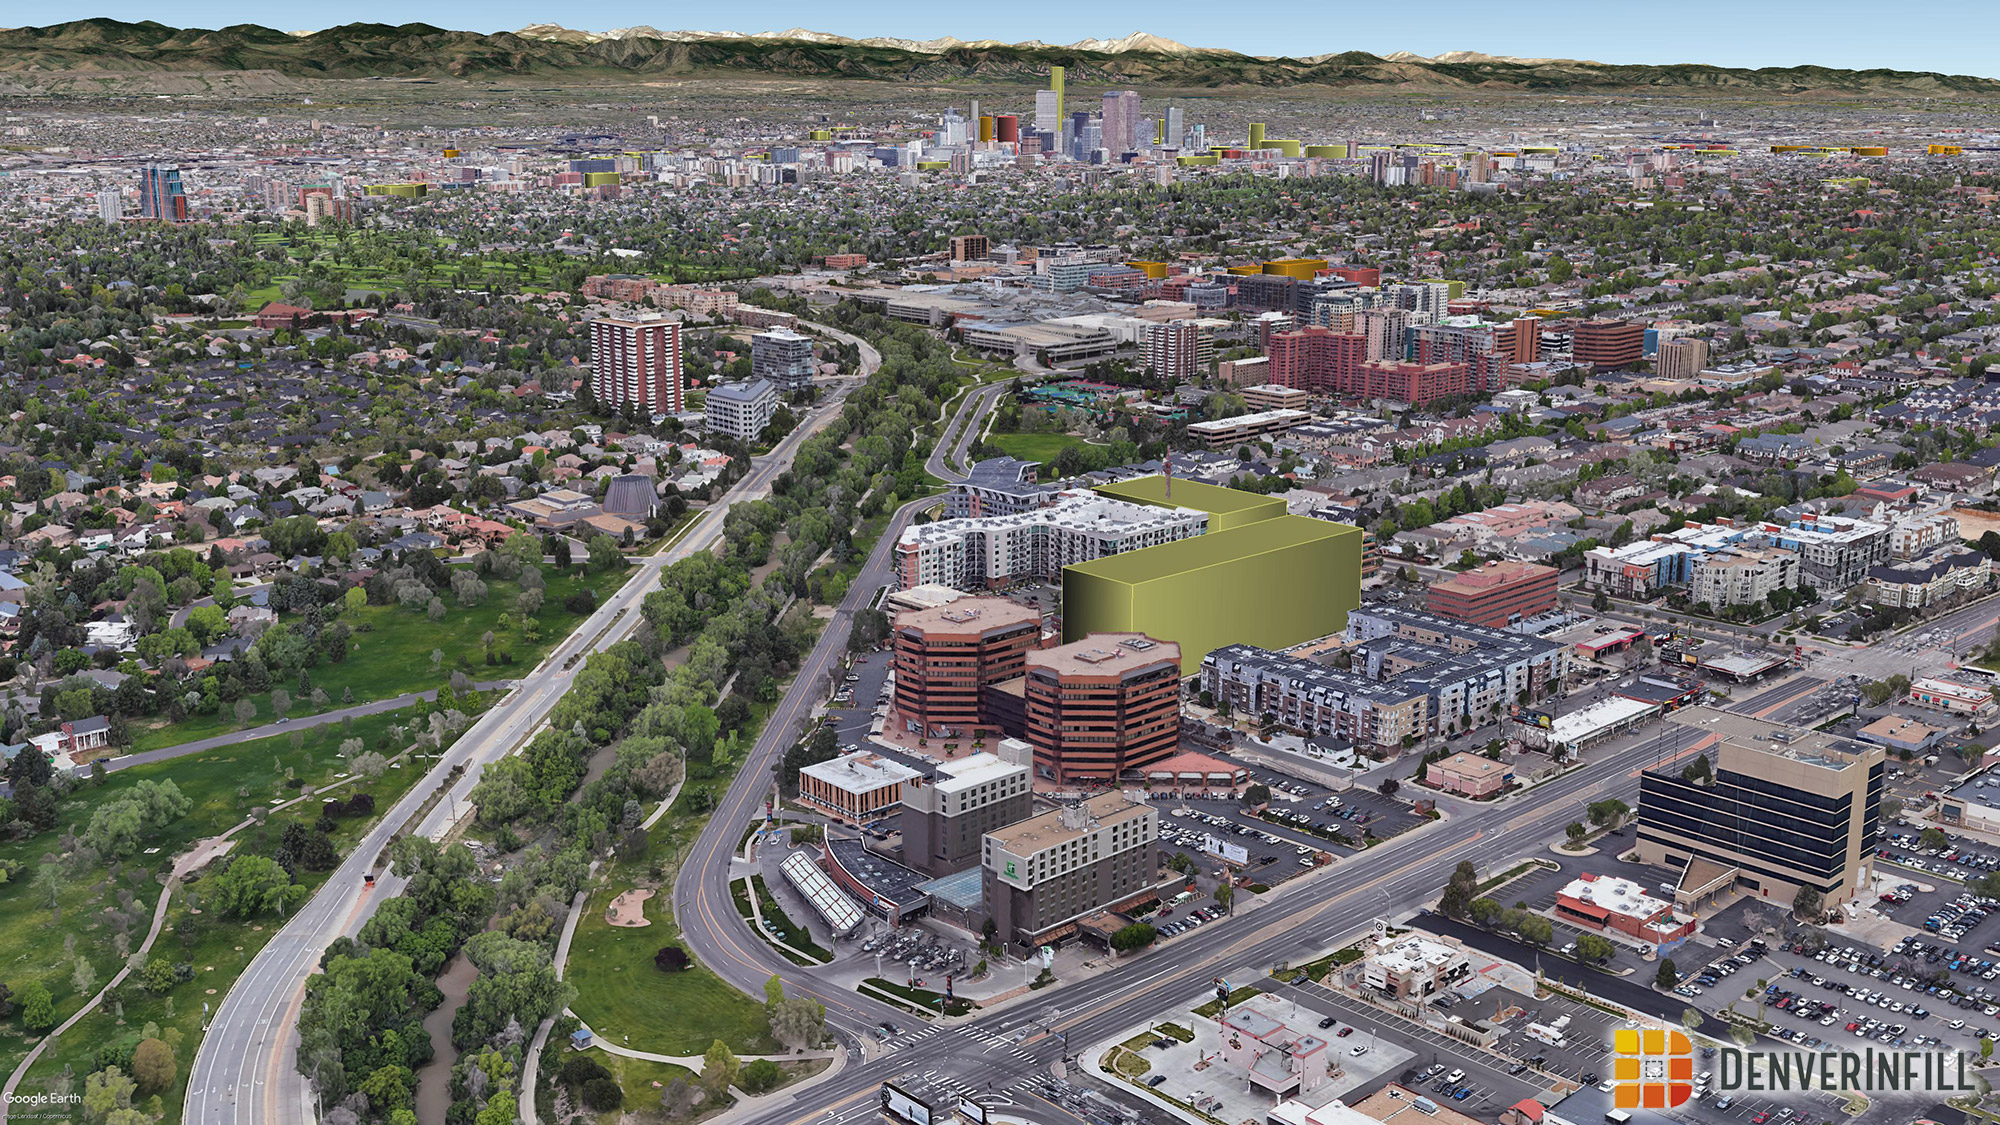 Denver 3D future skyline - view 9